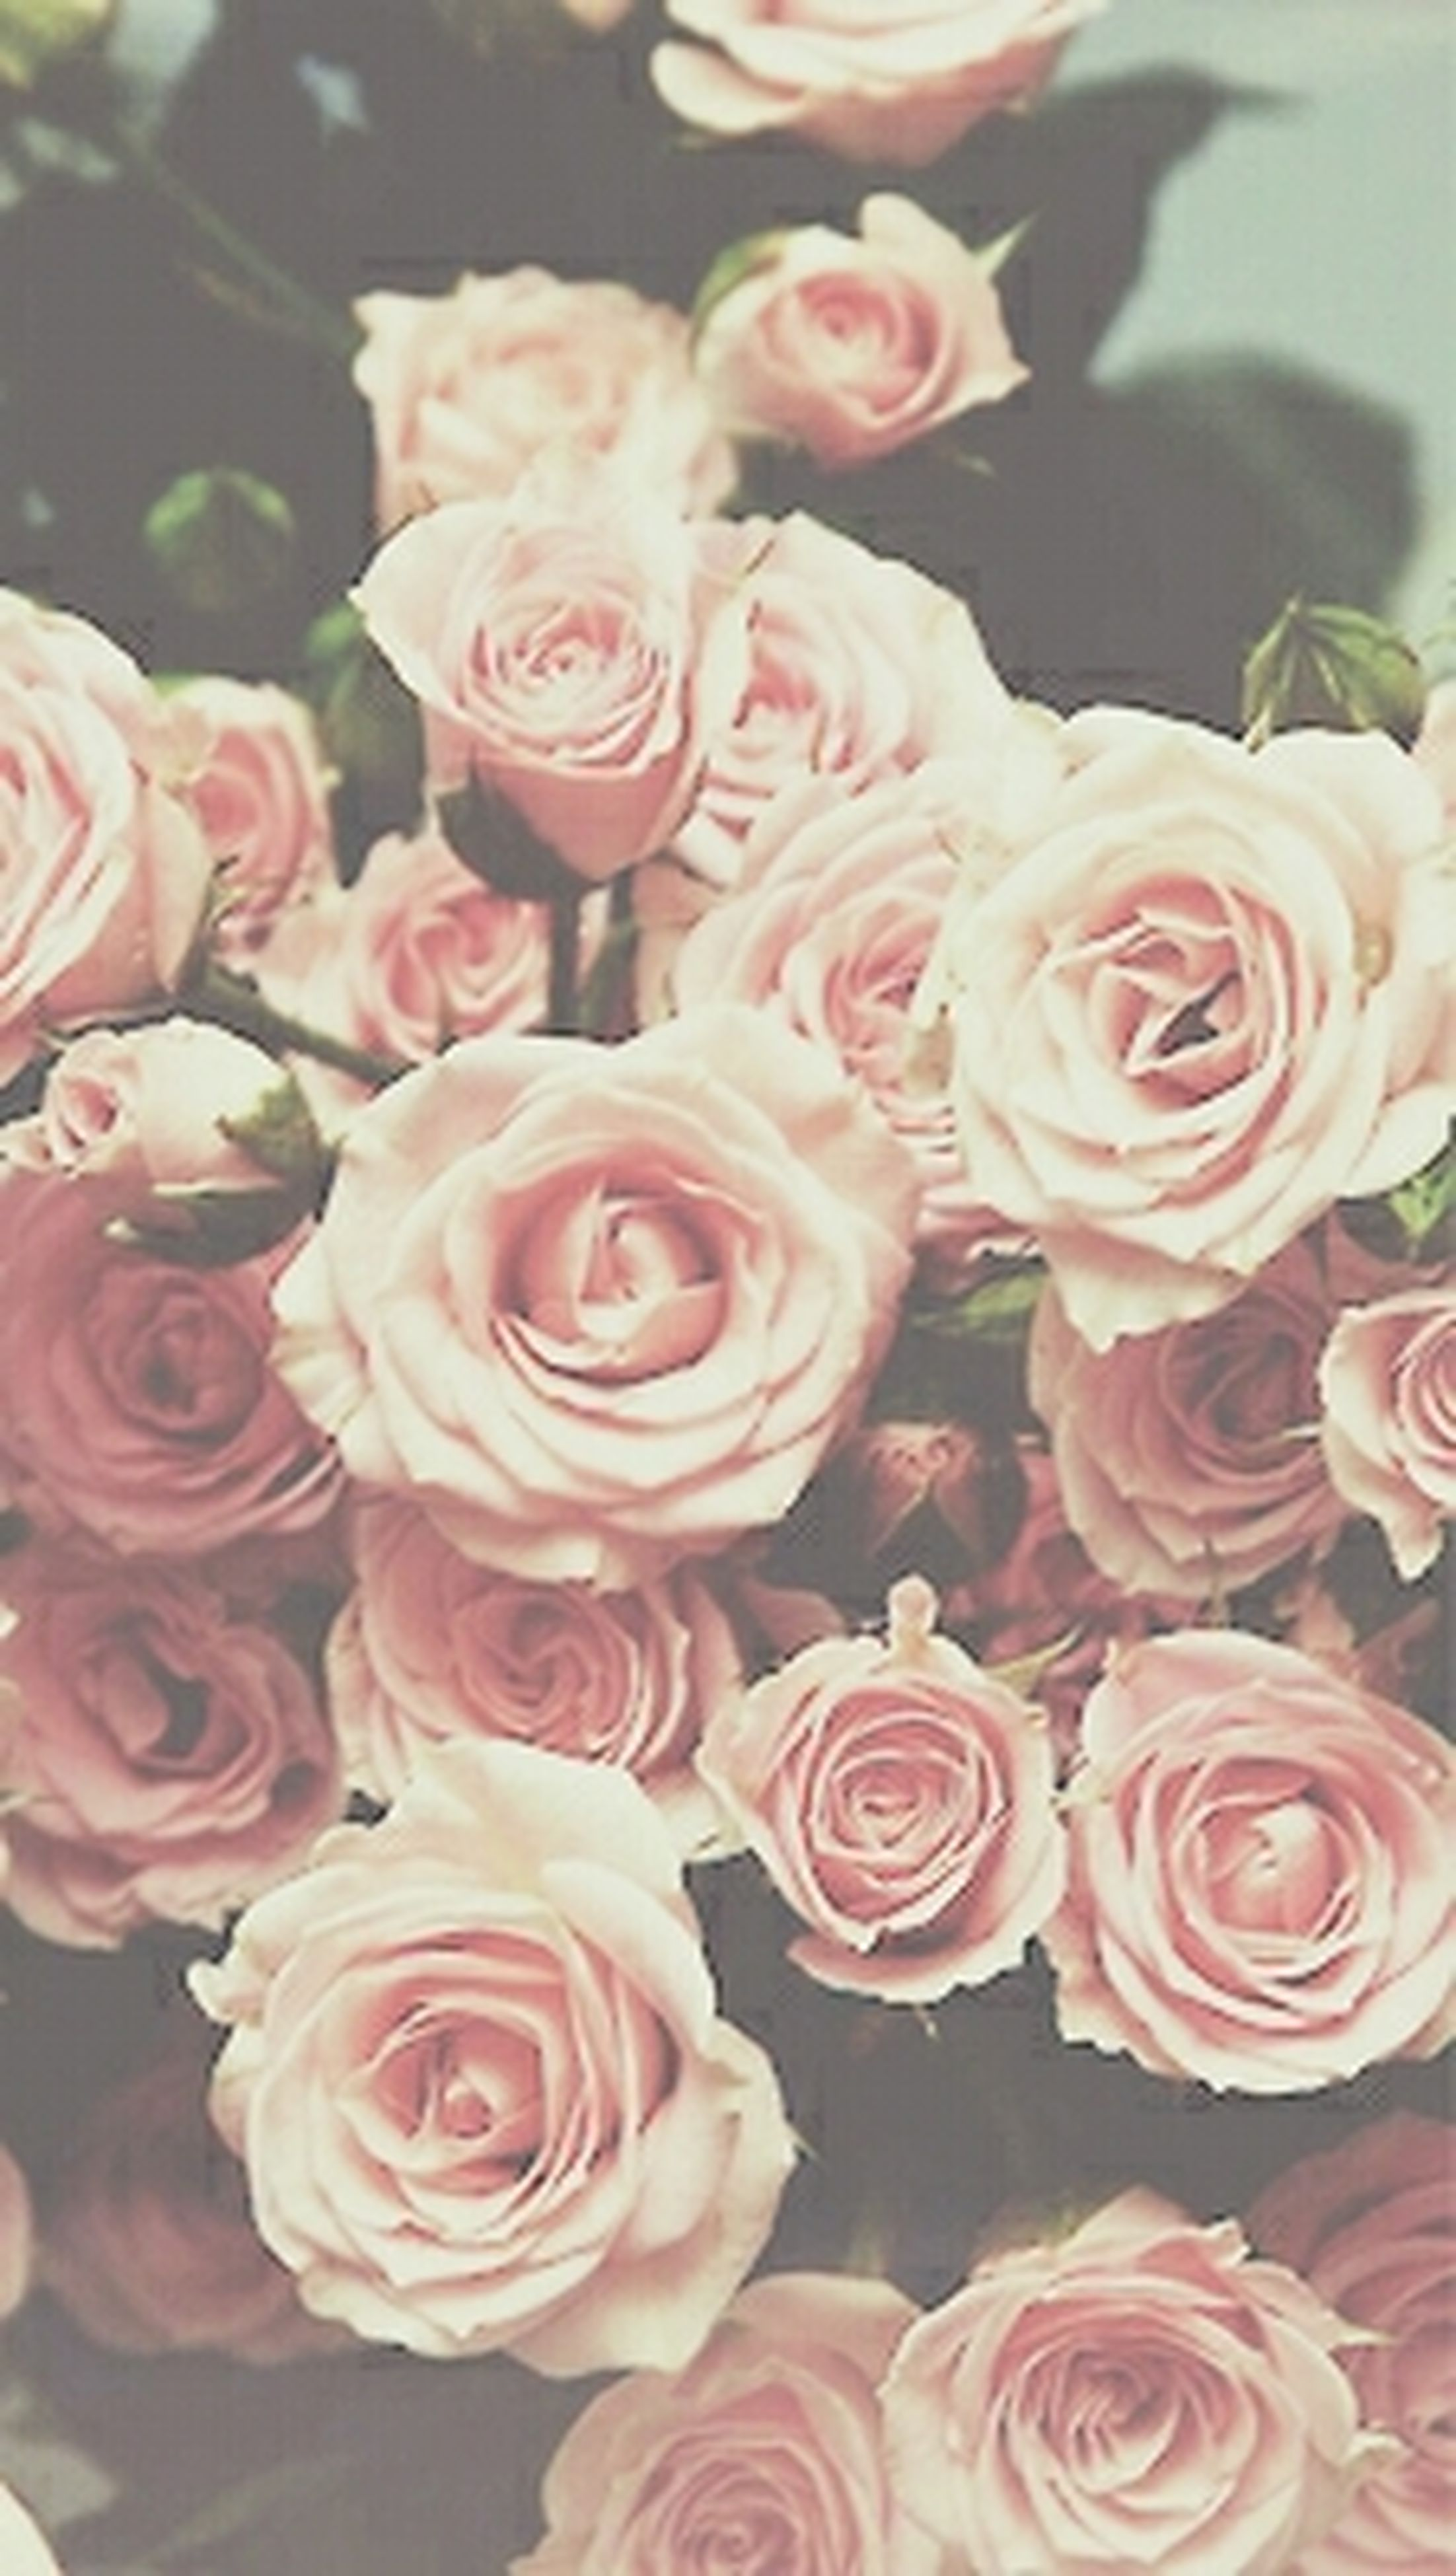 flower, freshness, rose - flower, petal, fragility, flower head, pink color, close-up, beauty in nature, indoors, rose, nature, bunch of flowers, blooming, pink, focus on foreground, growth, bouquet, no people, high angle view